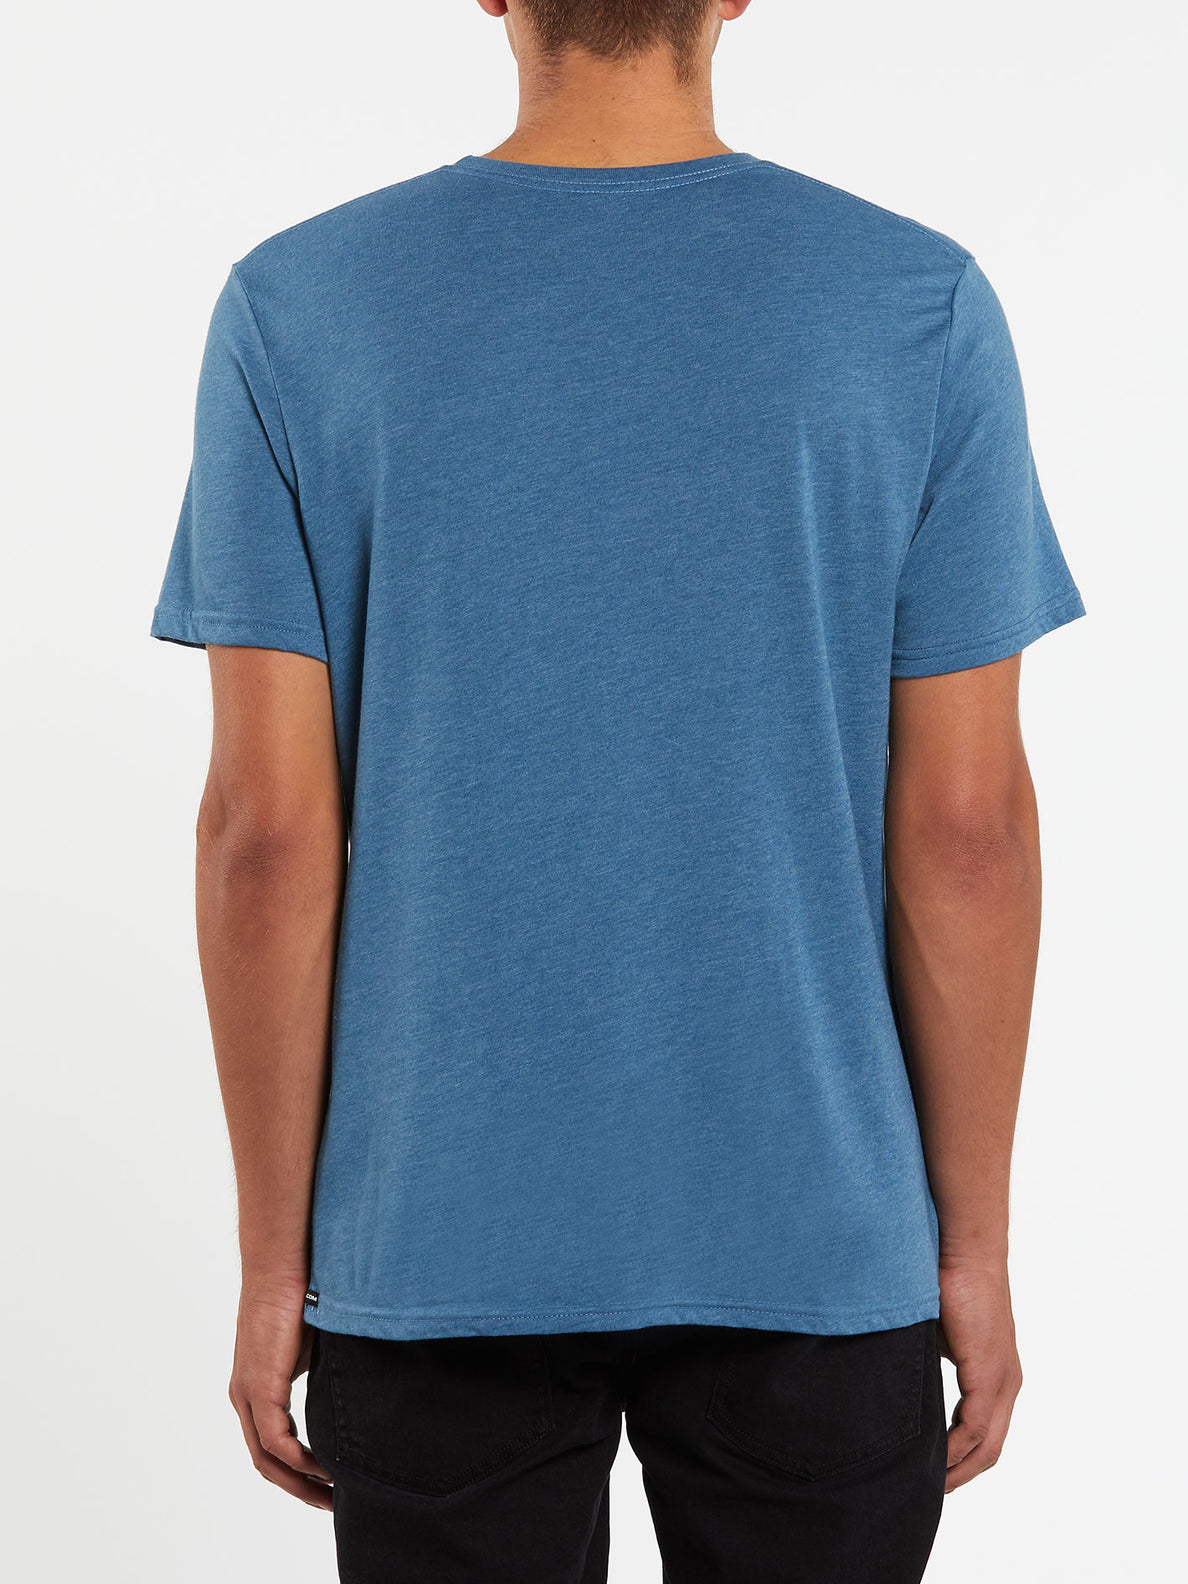 Trepid Short Sleeve Tee - Horizon Blue (A5732002_HZN) [B]